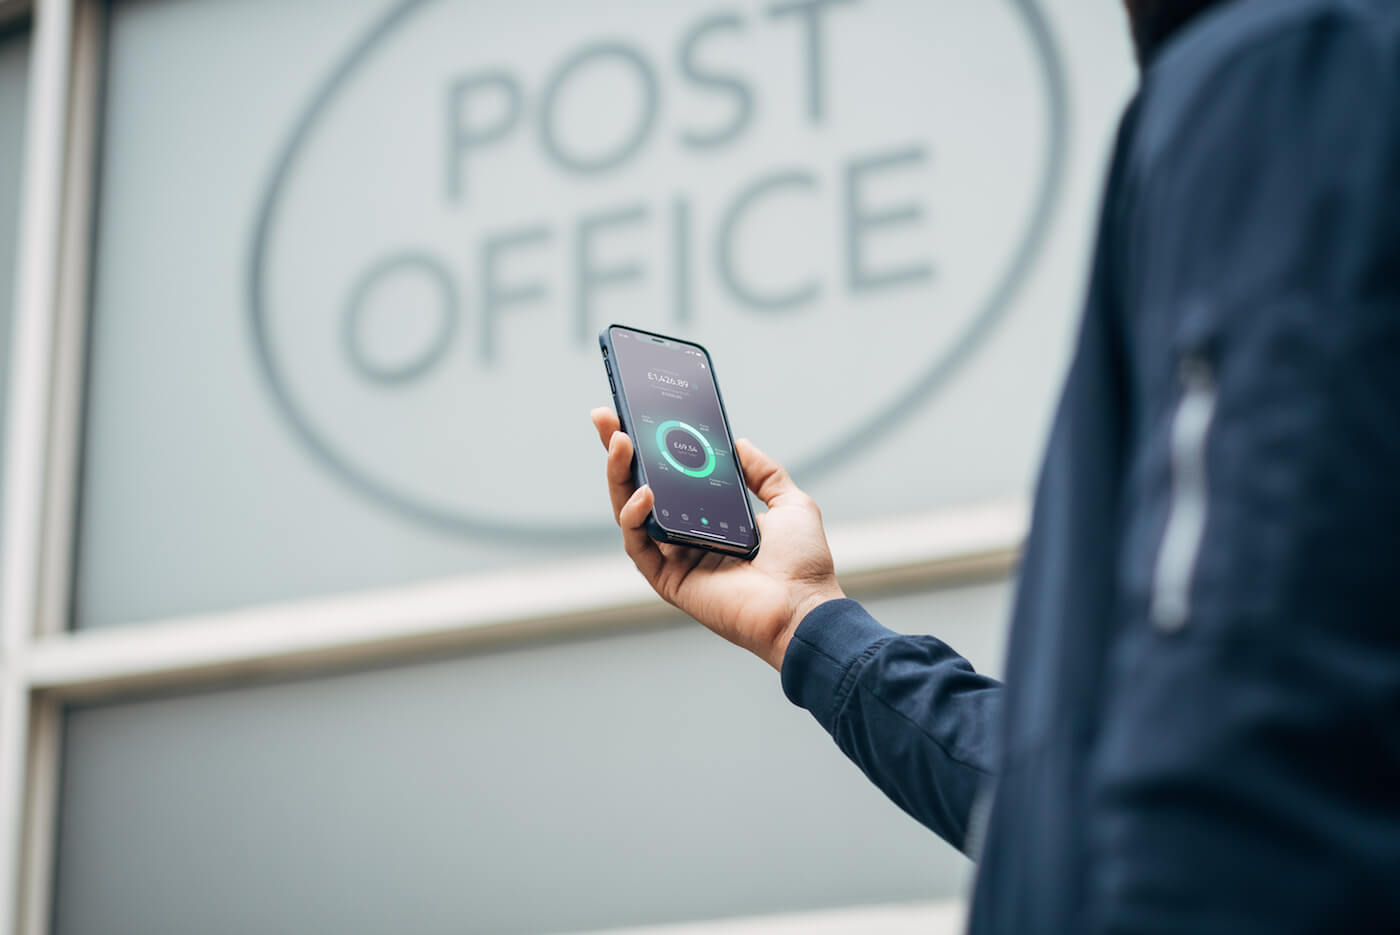 Introducing: Cash deposits at the Post Office - Starling Bank